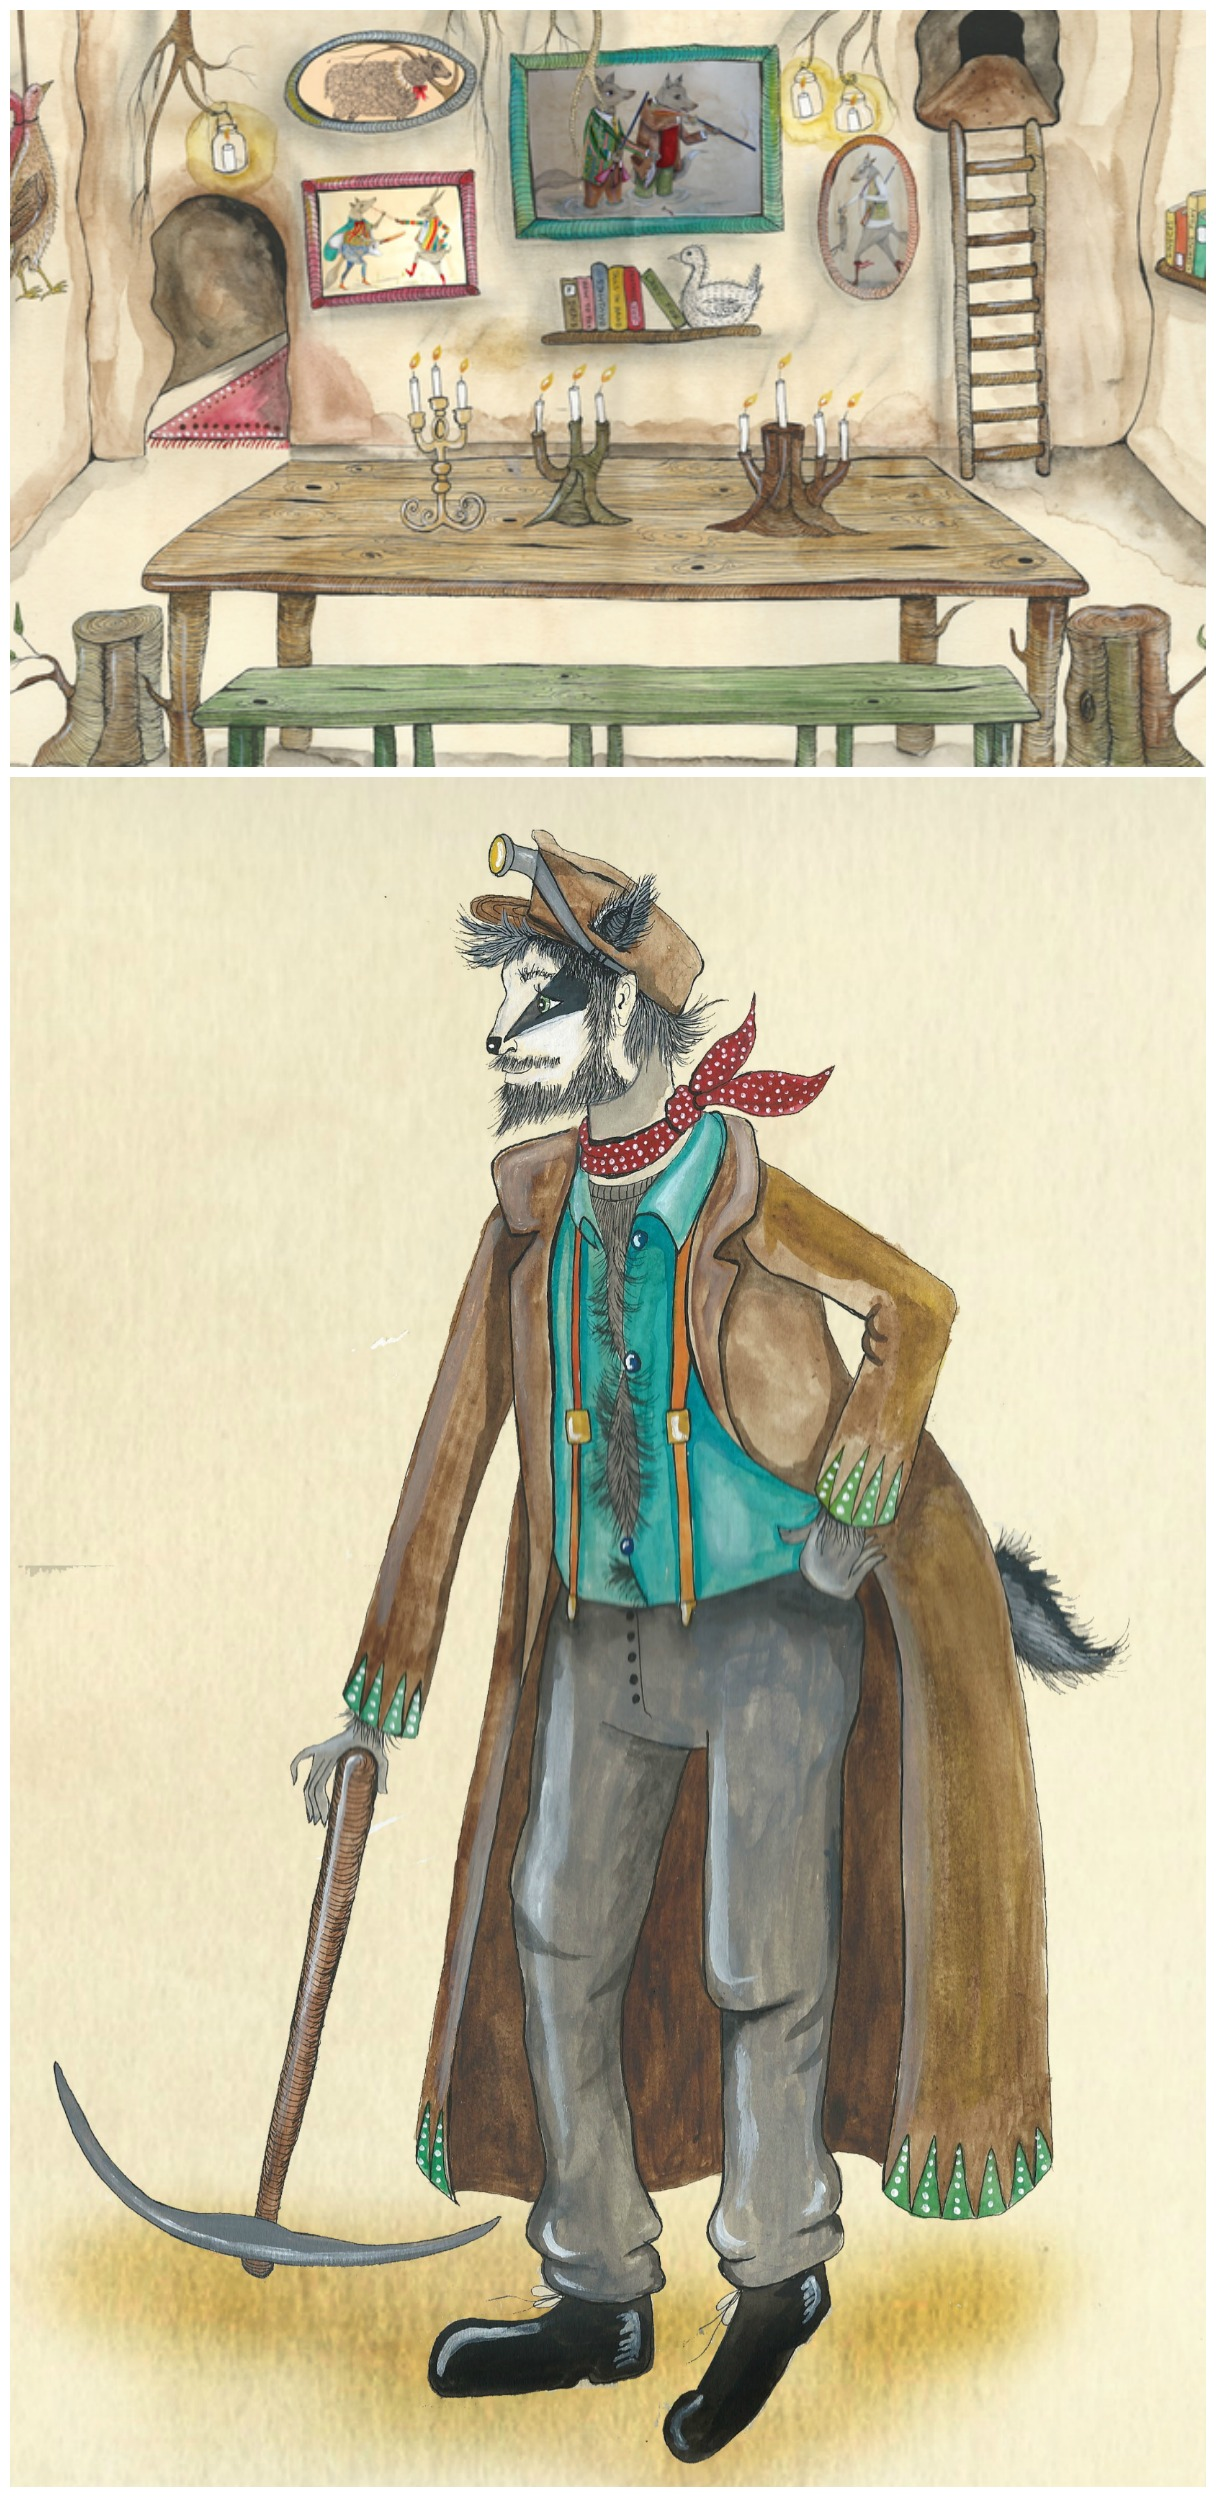 Scenes from The Fantastic Mr. Fox Opera as depicted by Illustrator, Emily Woodard